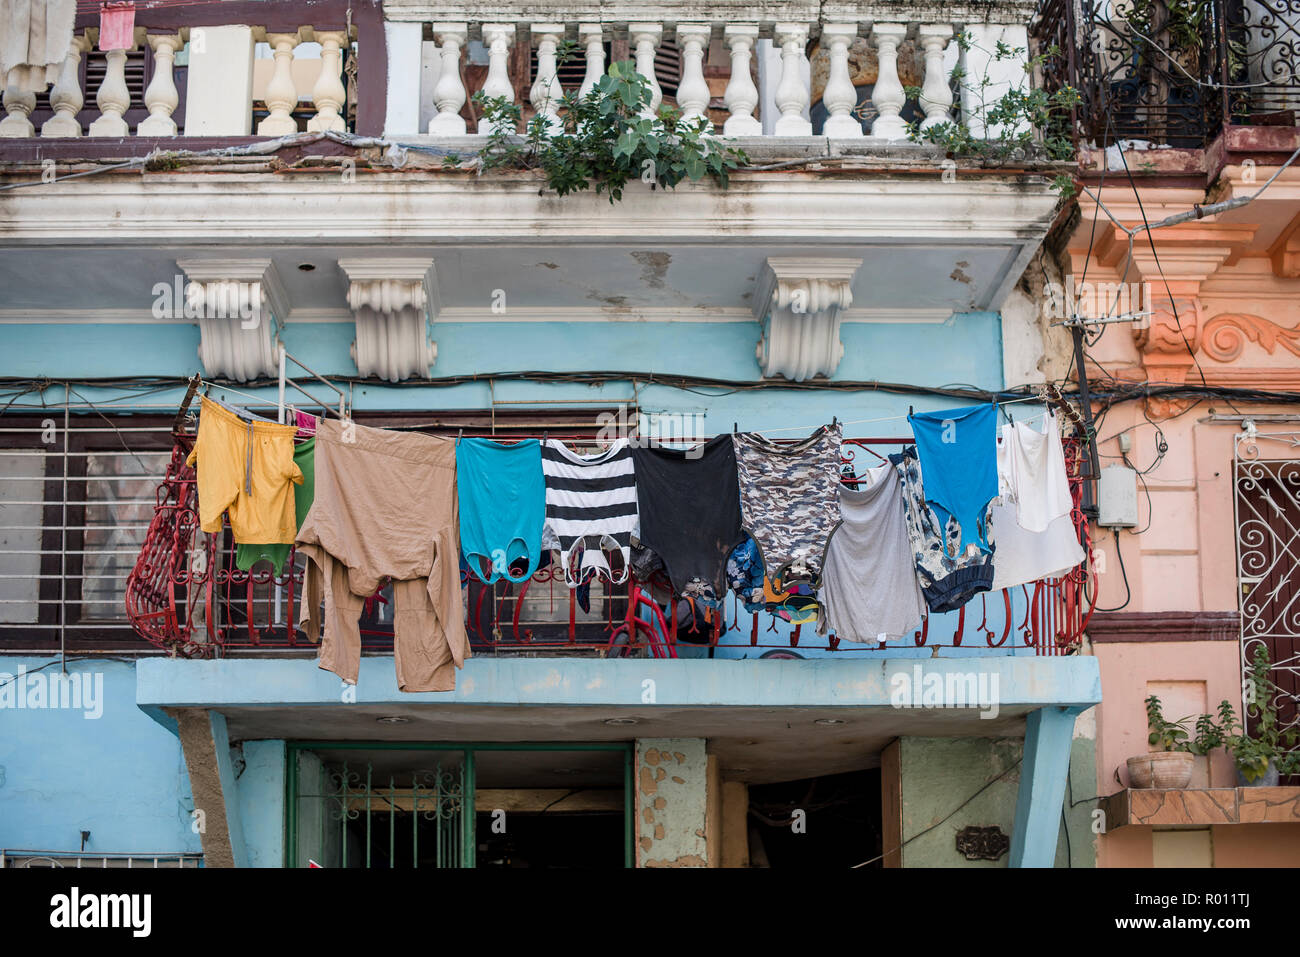 Colorful shirts and pants hang on a clothesline to dry in Havana, Cuba. - Stock Image